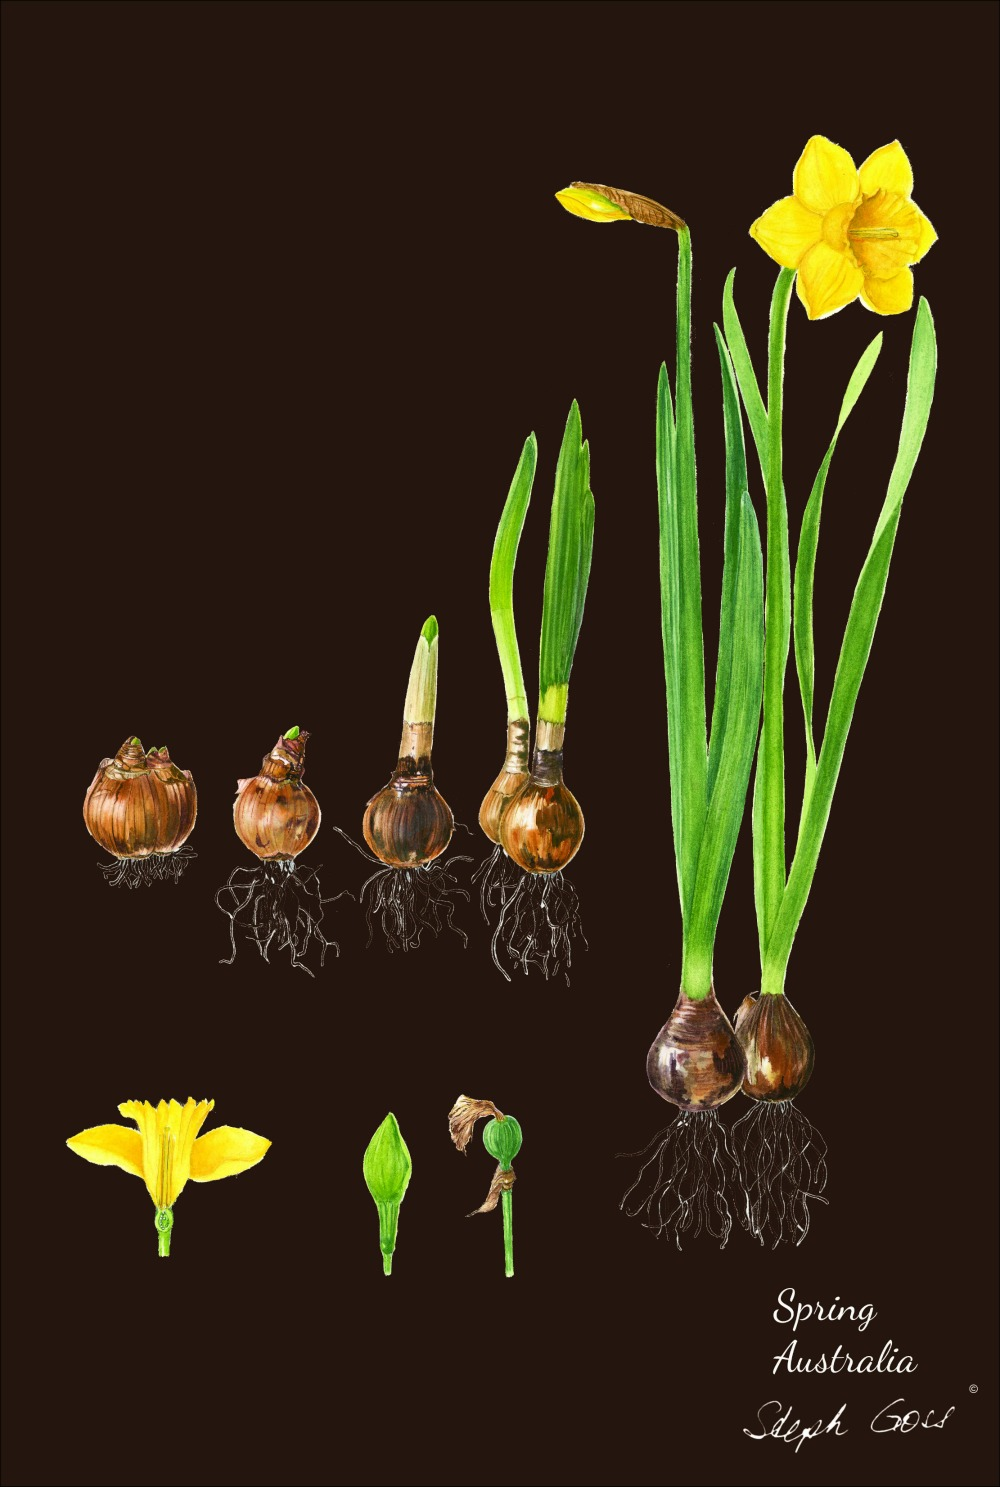 Daffodil bulbs on chocolate